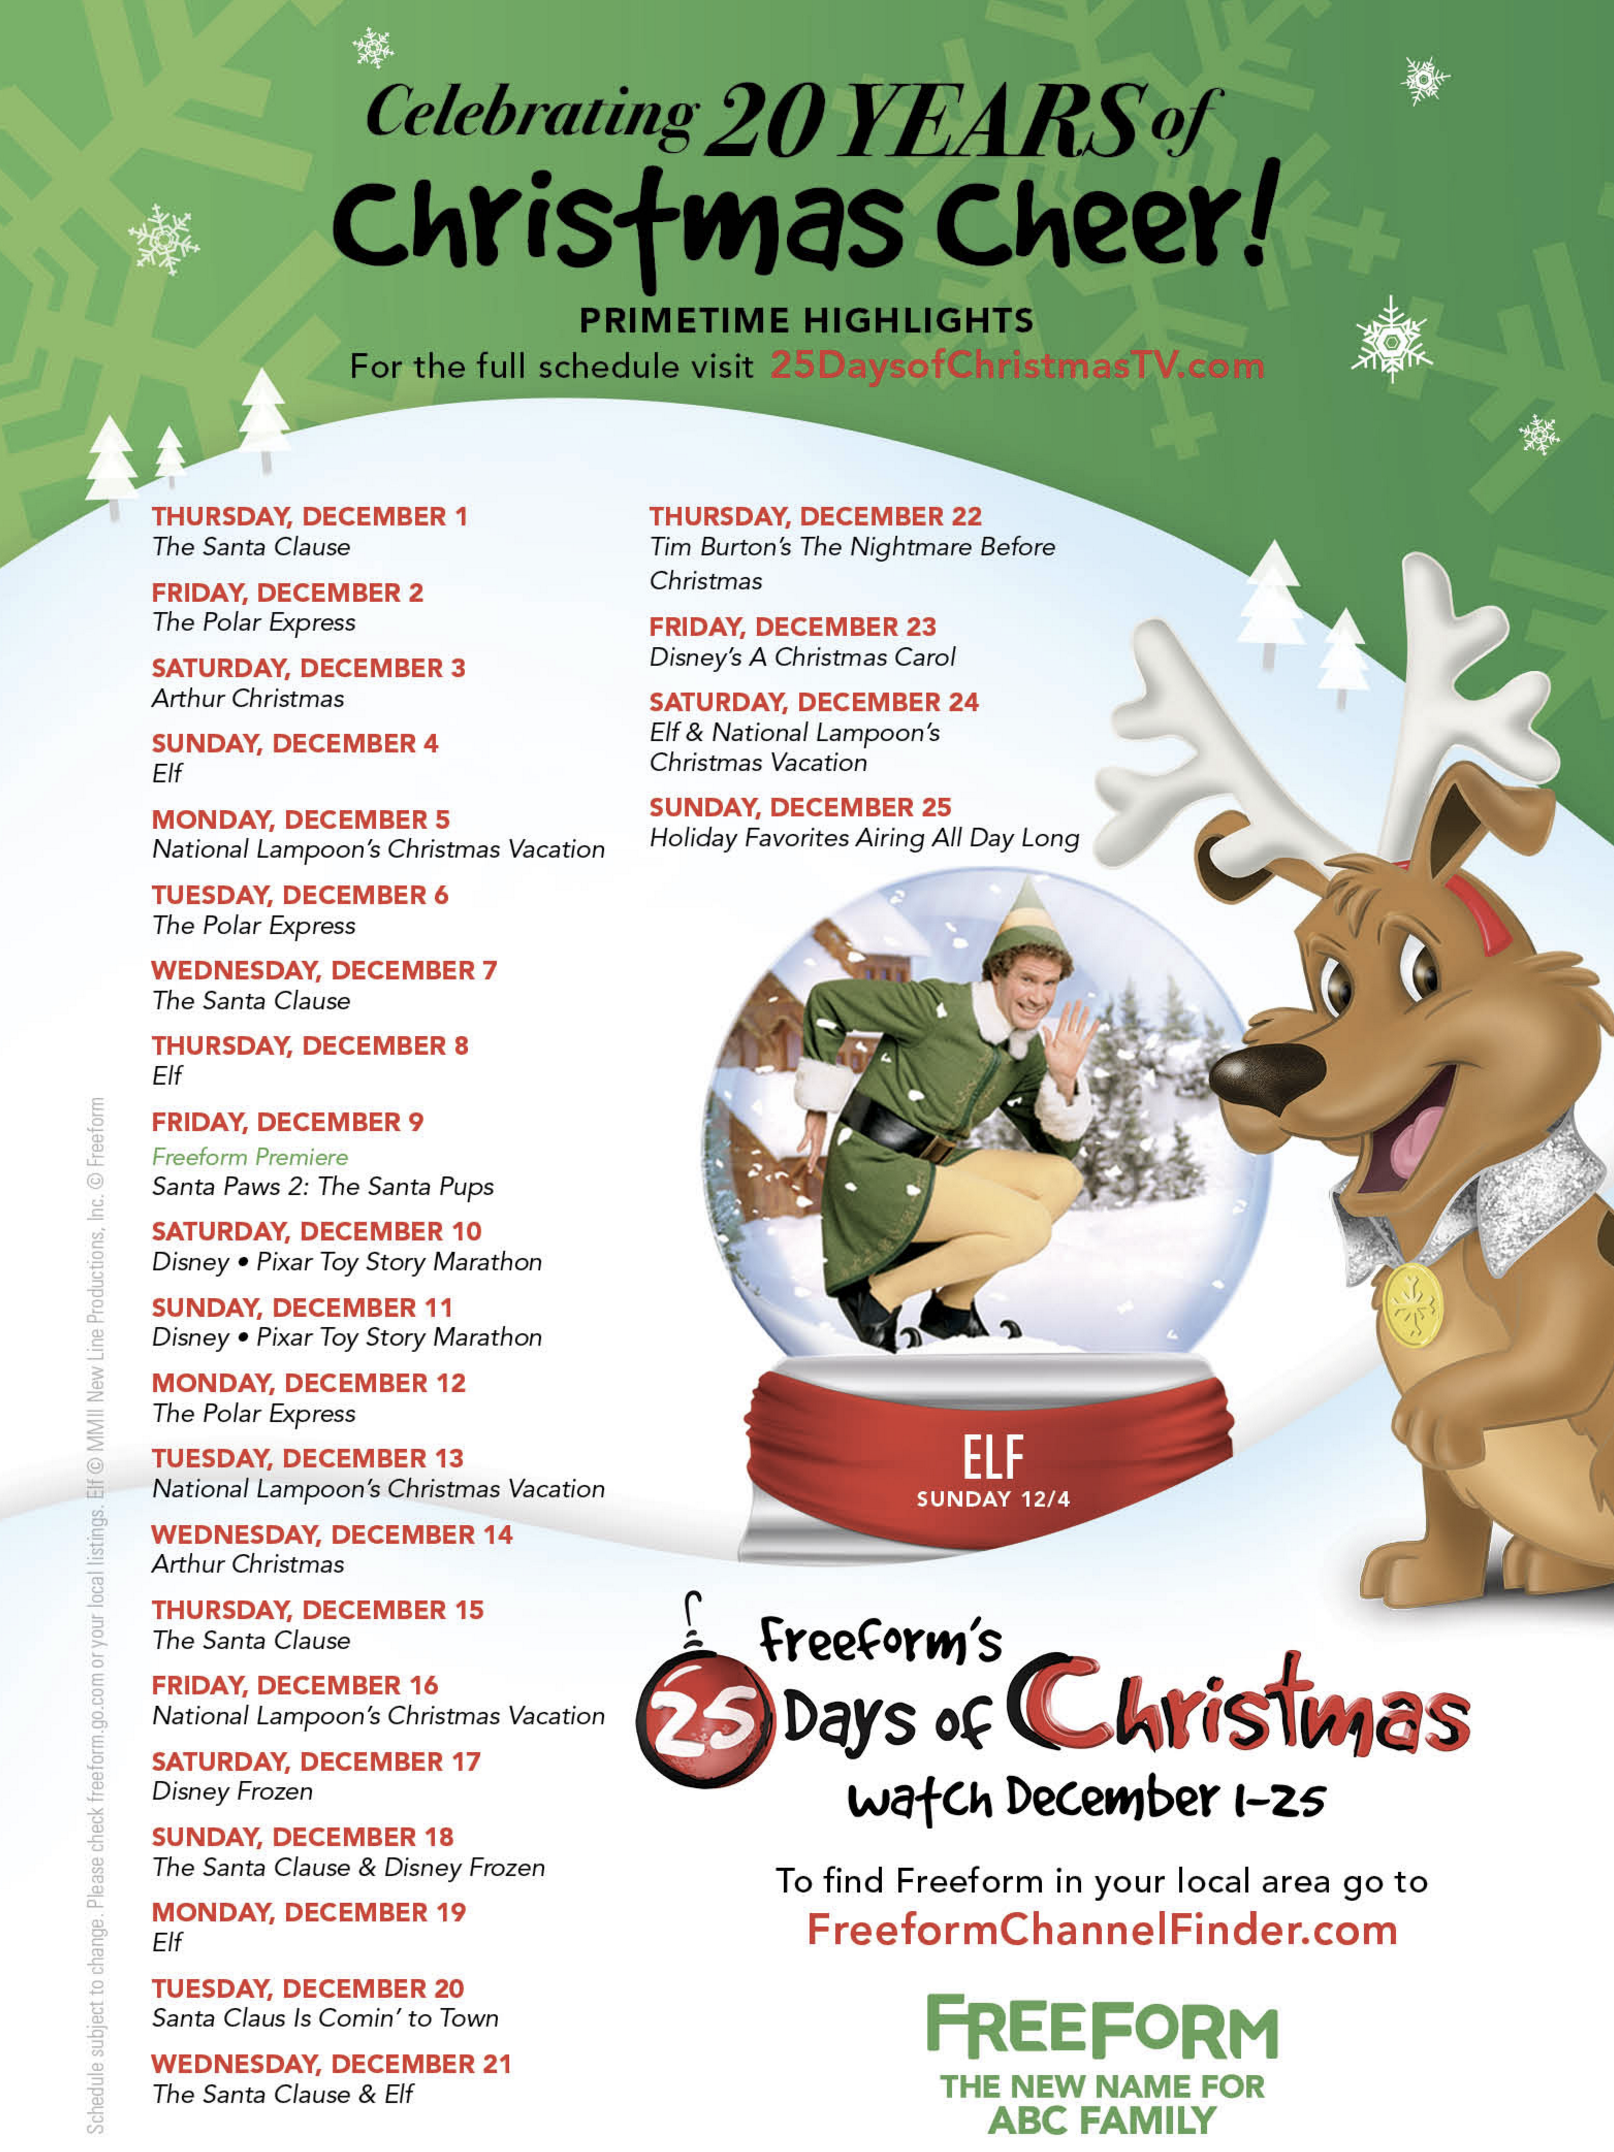 36a18f32909b6e Freeform (ABC Family) Celebrates 20 Years of Christmas Cheer with the